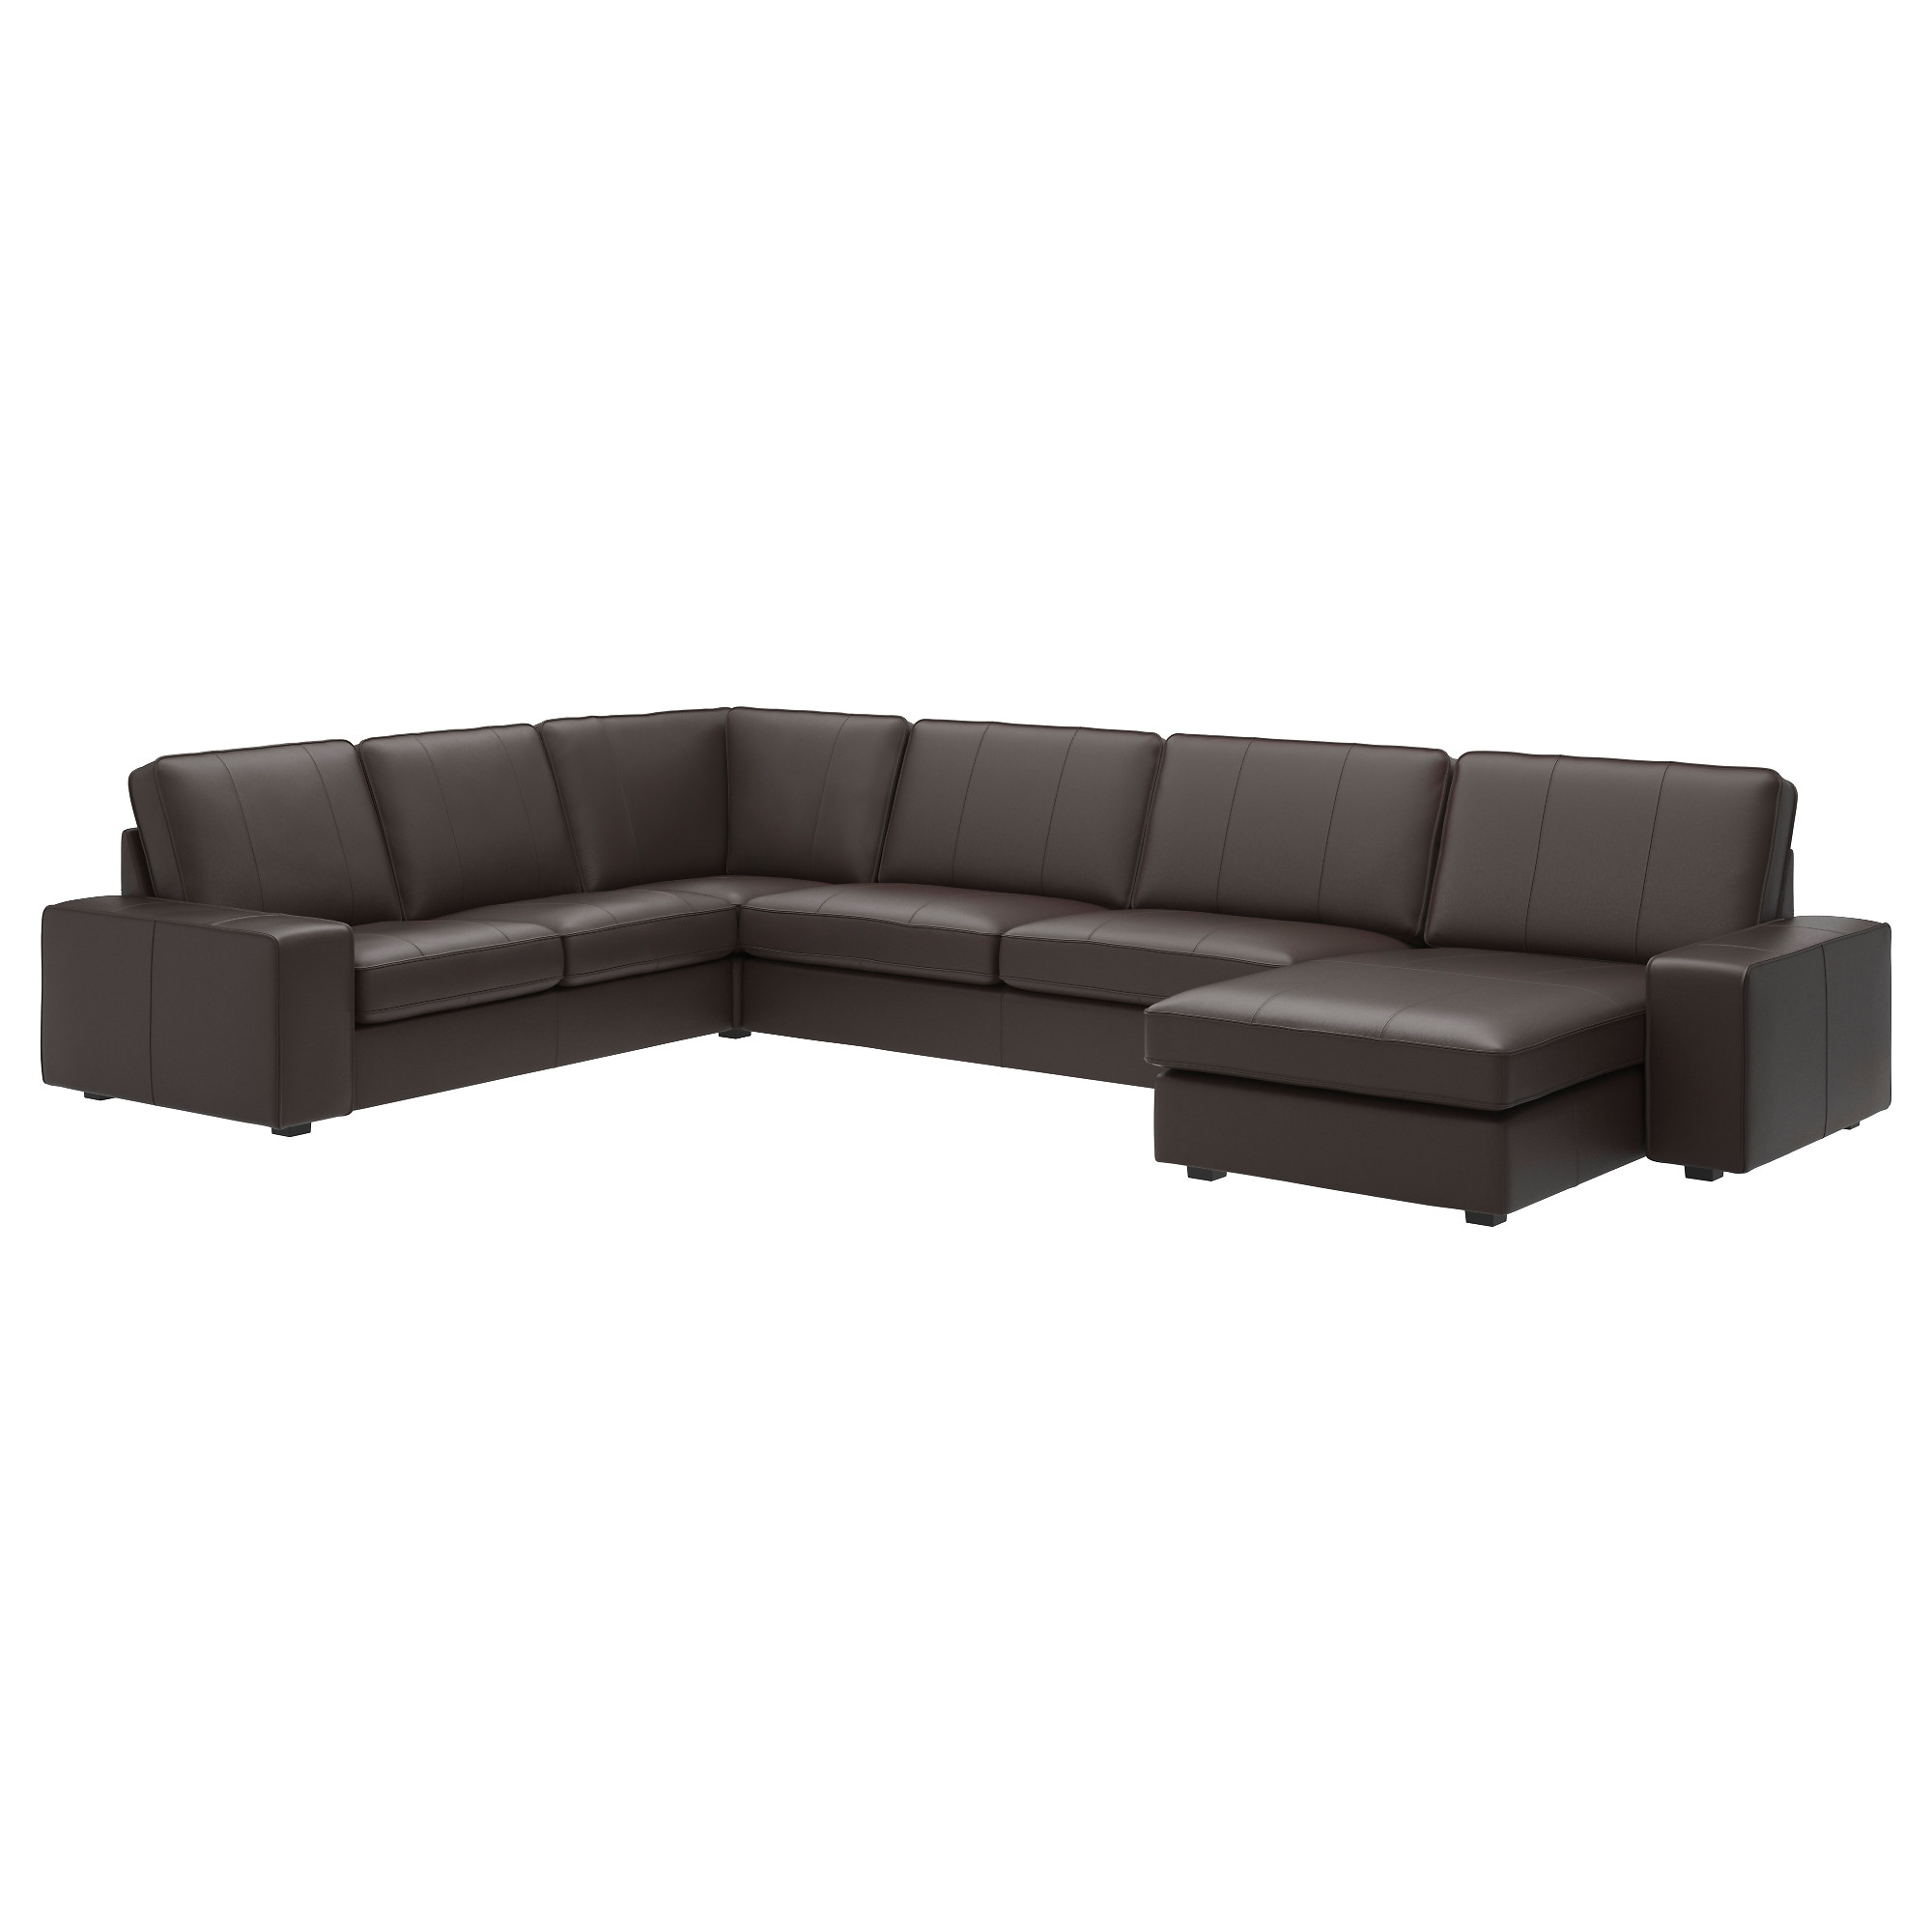 KIVIK sectional 5-seat Grann with chaise Bomstad Grann/Bomstad dark  sc 1 st  Ikea : sectional chaise sofas - Sectionals, Sofas & Couches